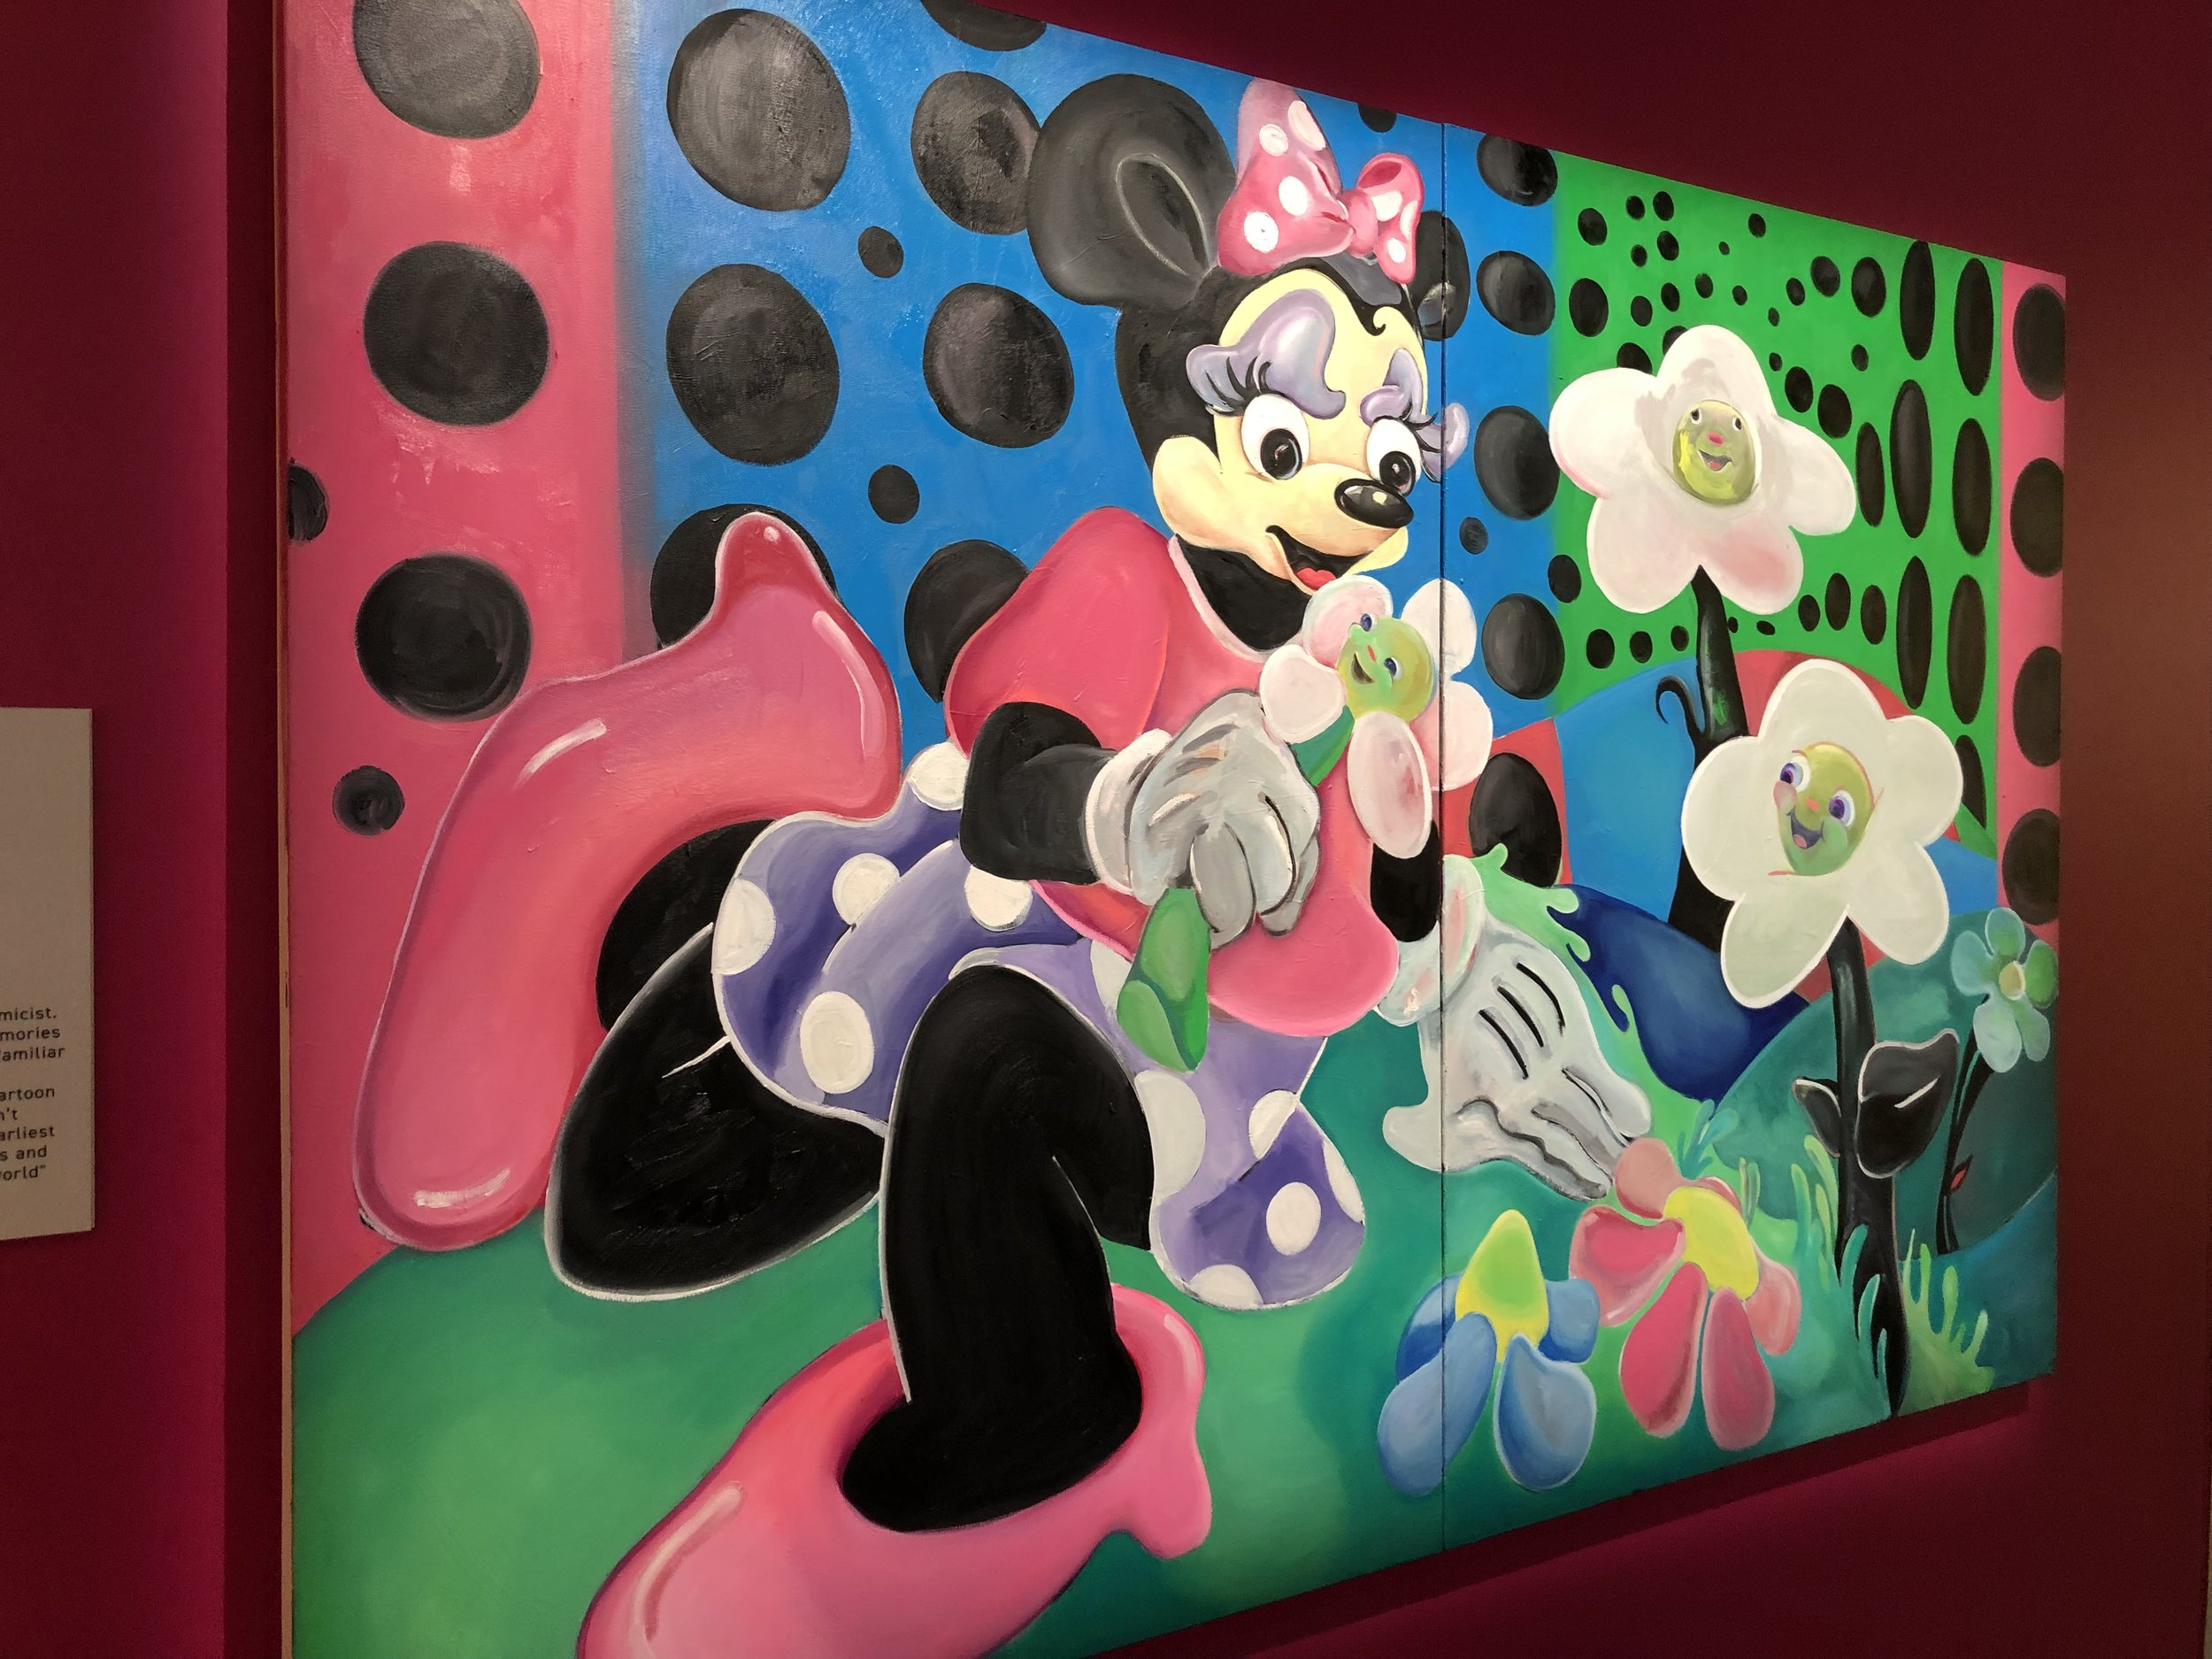 """Alake Shilling's """"A Nice Day with Minnie and Daisies"""""""